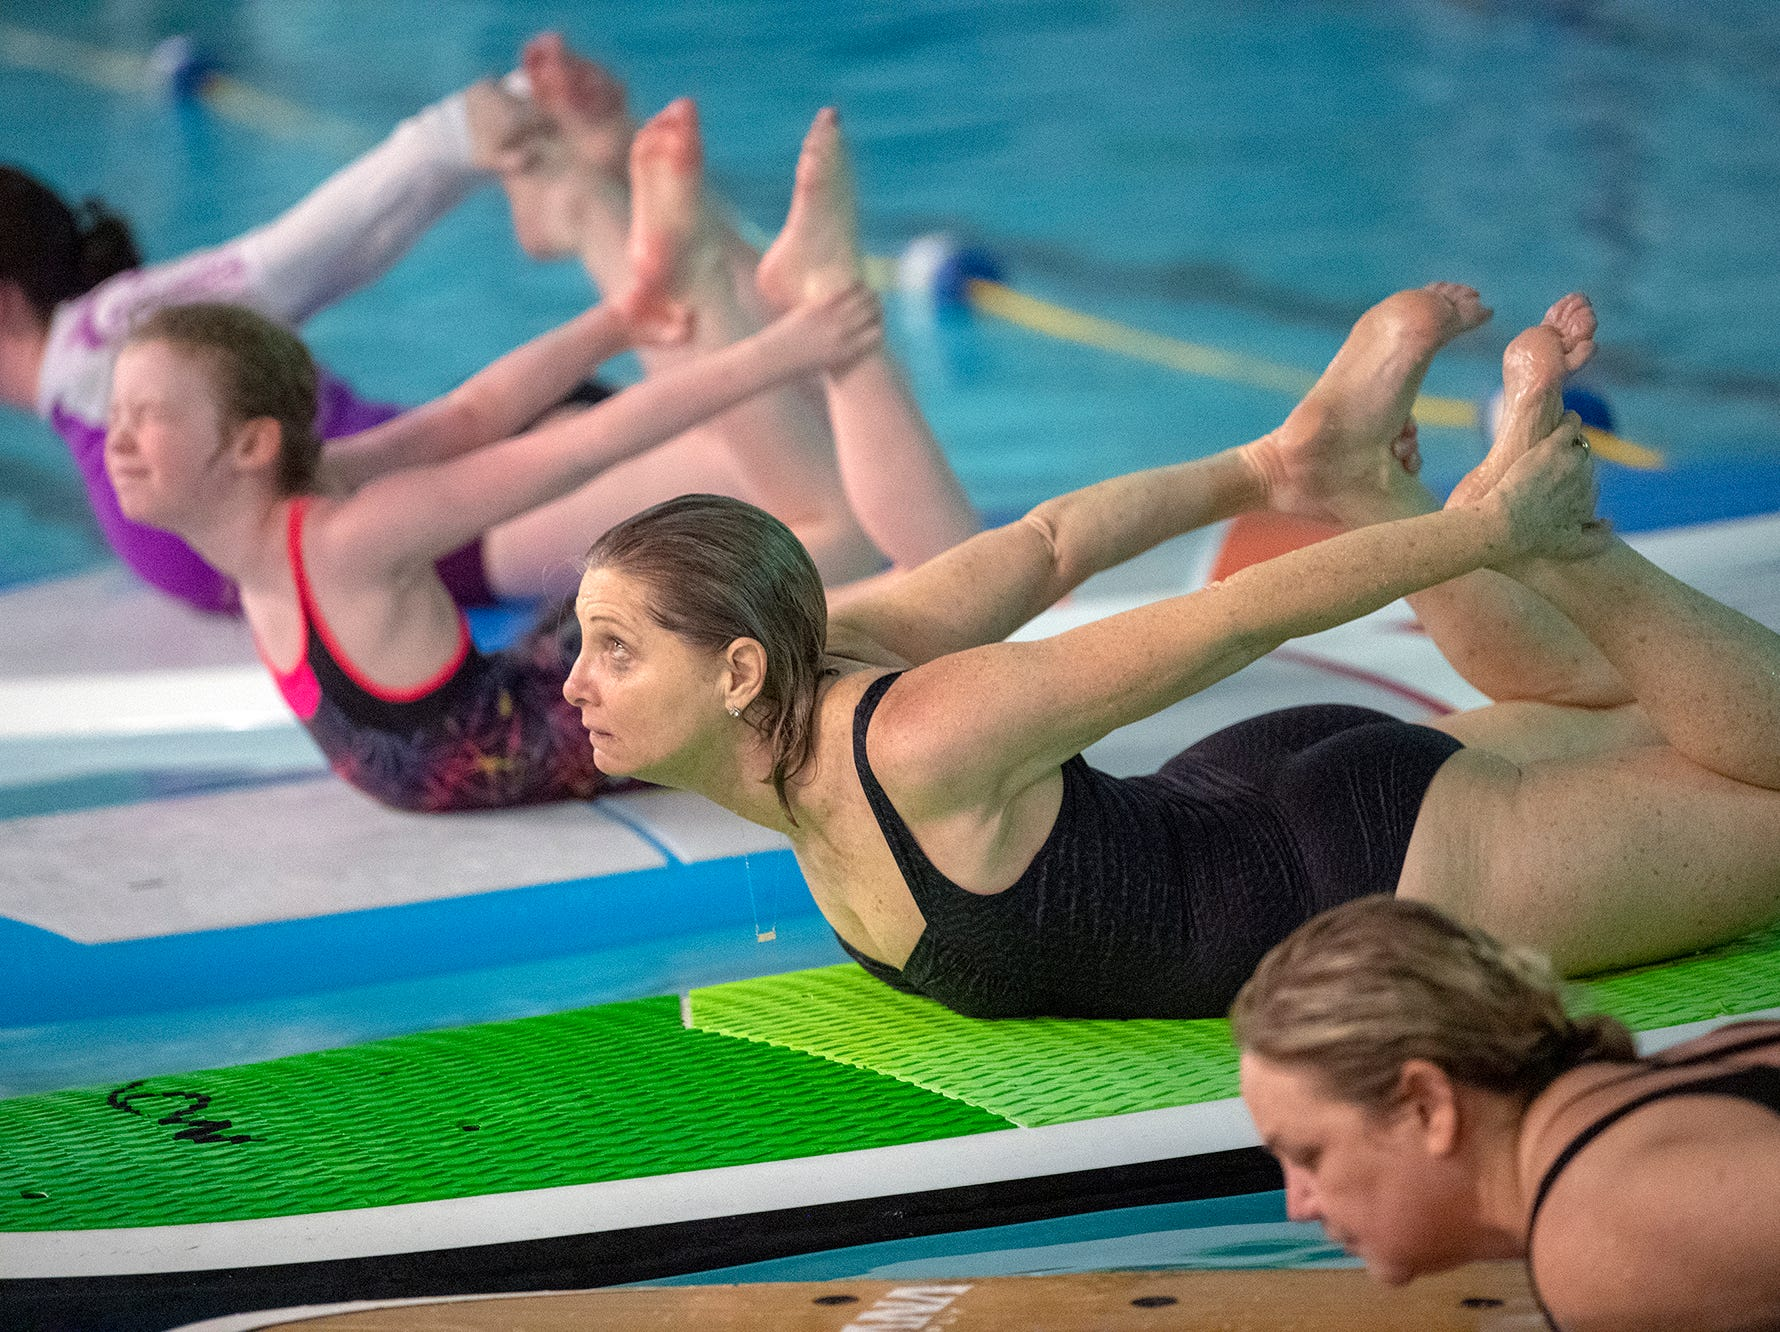 The YWCA York is offering a Paddle Board Yoga Class in their pool for the first time. Shank's Mare provided the boards. The class is offered on the open water by Shank's Mare in warmer weather.